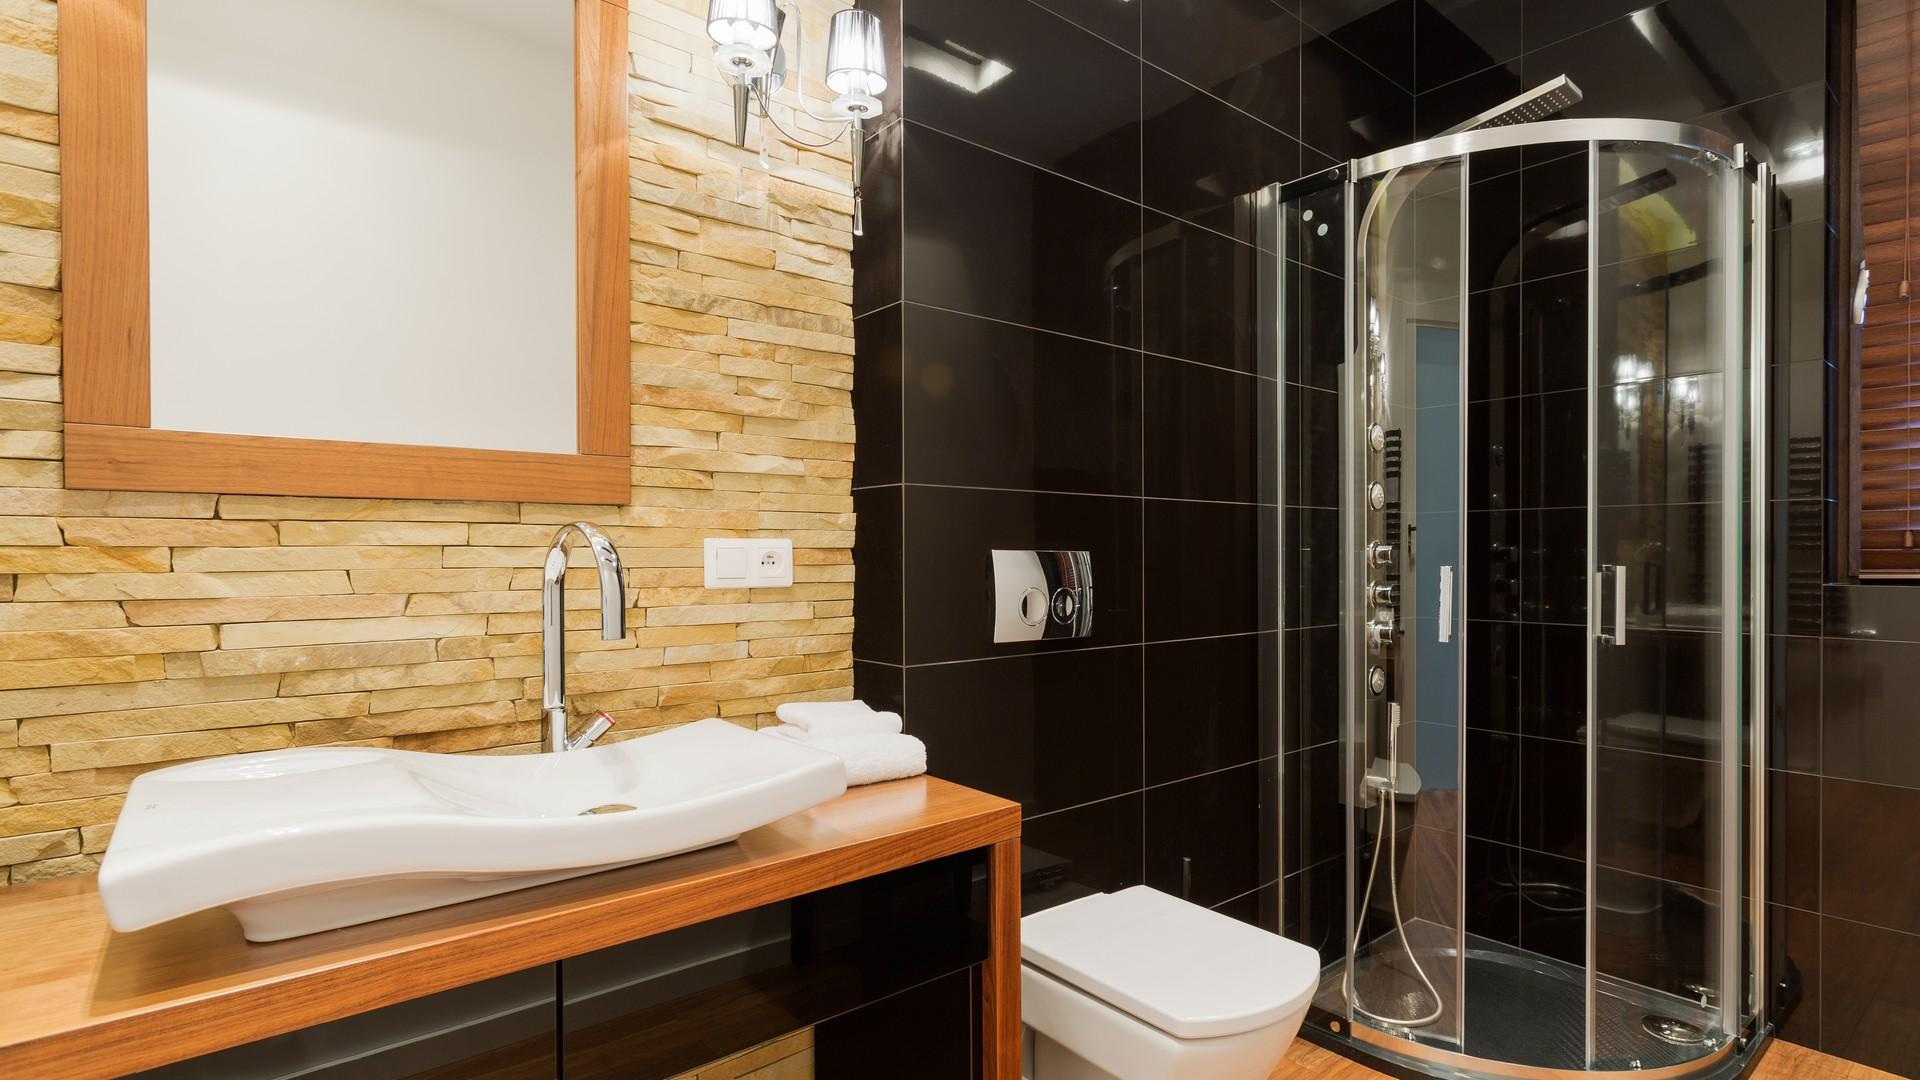 Bathroom King - image b6a00c4aca4d on https://bathroomrenovationsking.com.au